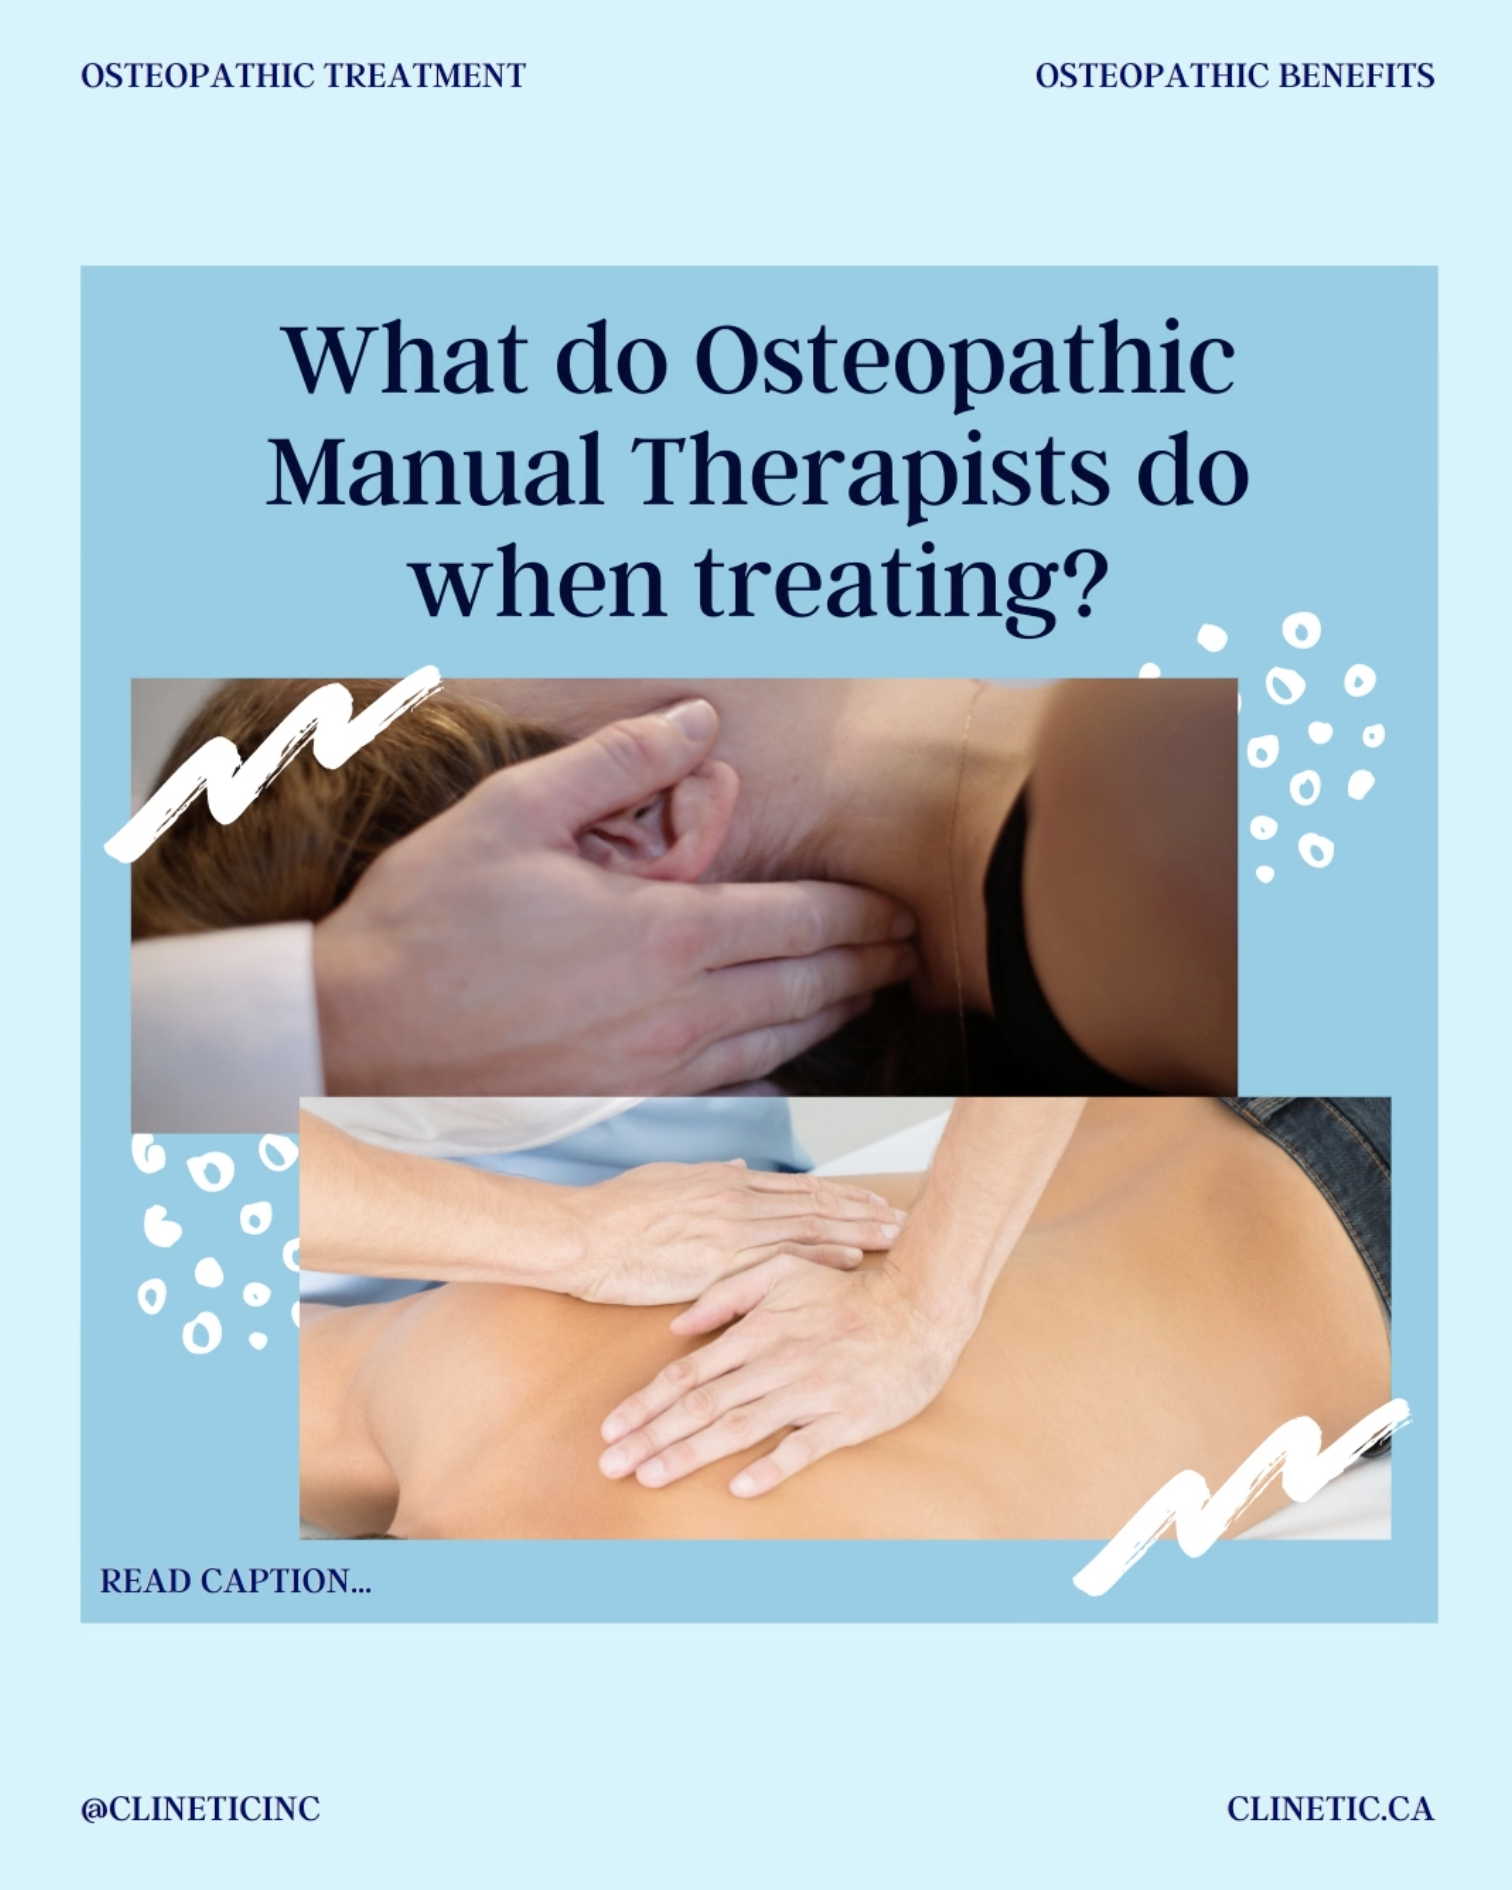 What do Osteopathic Manual Therapists do when treating?